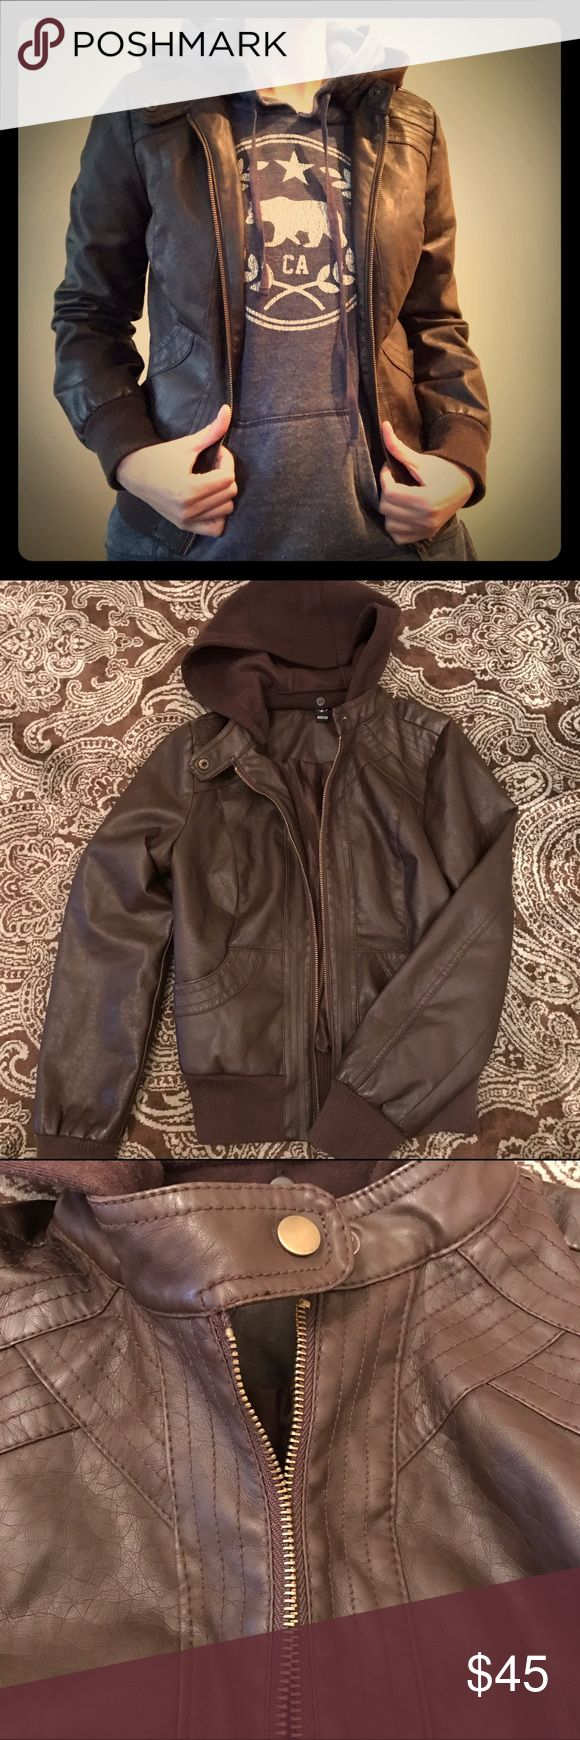 Brown Hooded Bomber Jacket Adorable brown bomber jacket with removable hood, gold zipper, neck collar button snap and lined interior. Never worn. WINDSOR Jackets & Coats